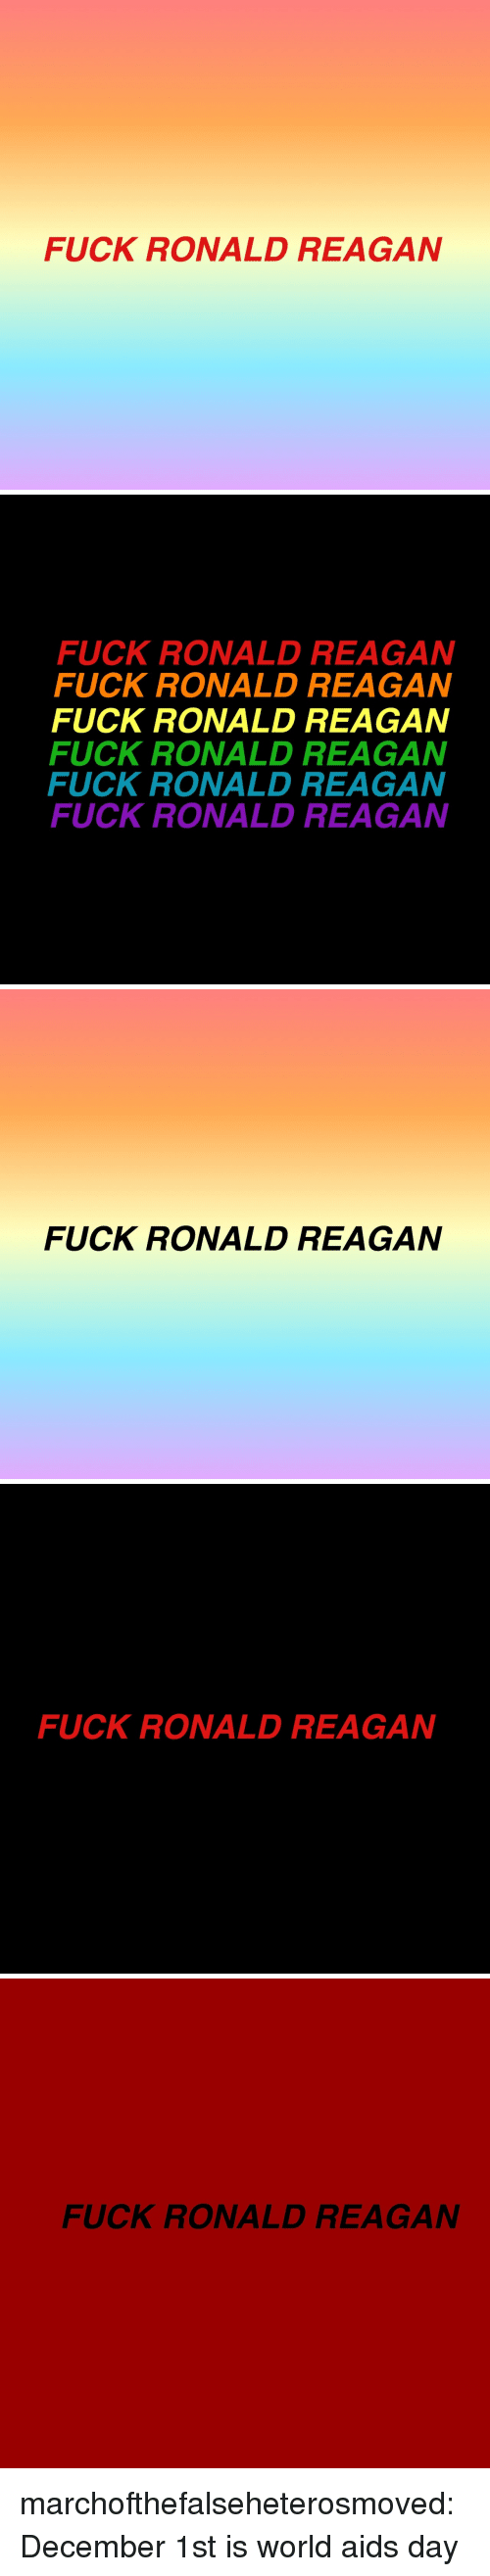 Tumblr, Blog, and Fuck: FUCK RONALD REAGAN   FUCK RONALD REAGAN  FUCK RONALD REAGAN  FUCK RONALD REAGAN  FUCK RONALD REAGAN  FUCK RONALD REAGAN  FUCK RONALD REAGAN   FUCK RONALD REAGAN   FUCK RONALD REAGAN   FUCK RONALD REAGAN marchofthefalseheterosmoved:December 1st is world aids day